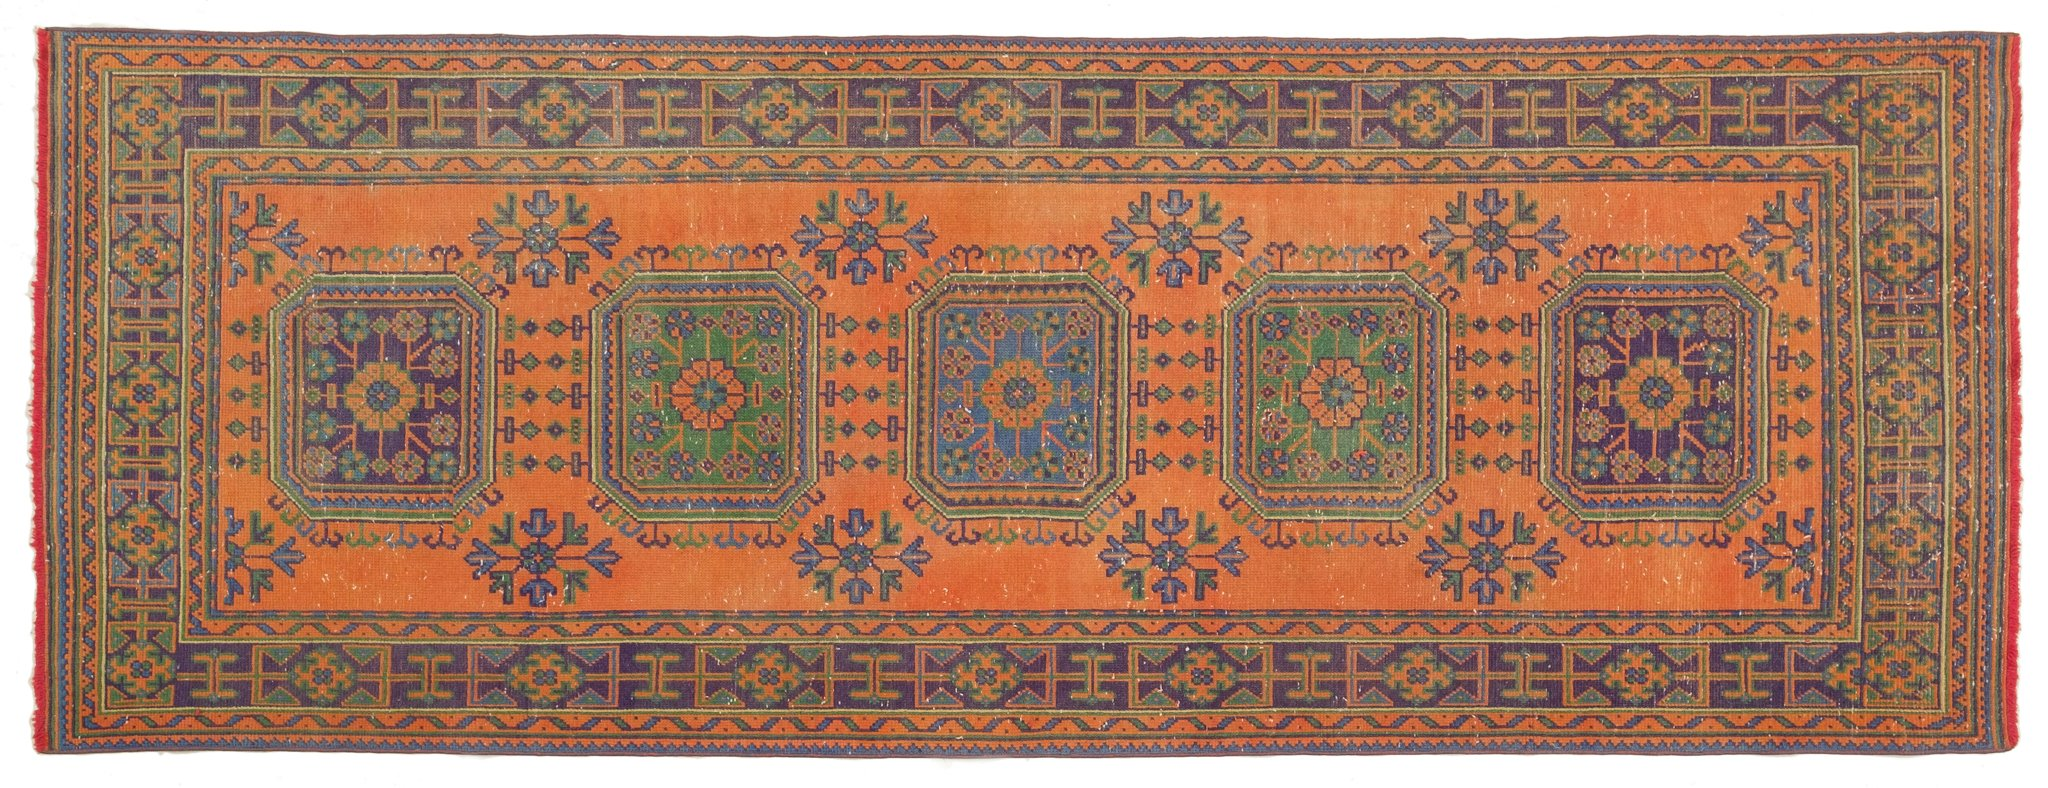 Vintage Turkish Runner Rug Apolinario